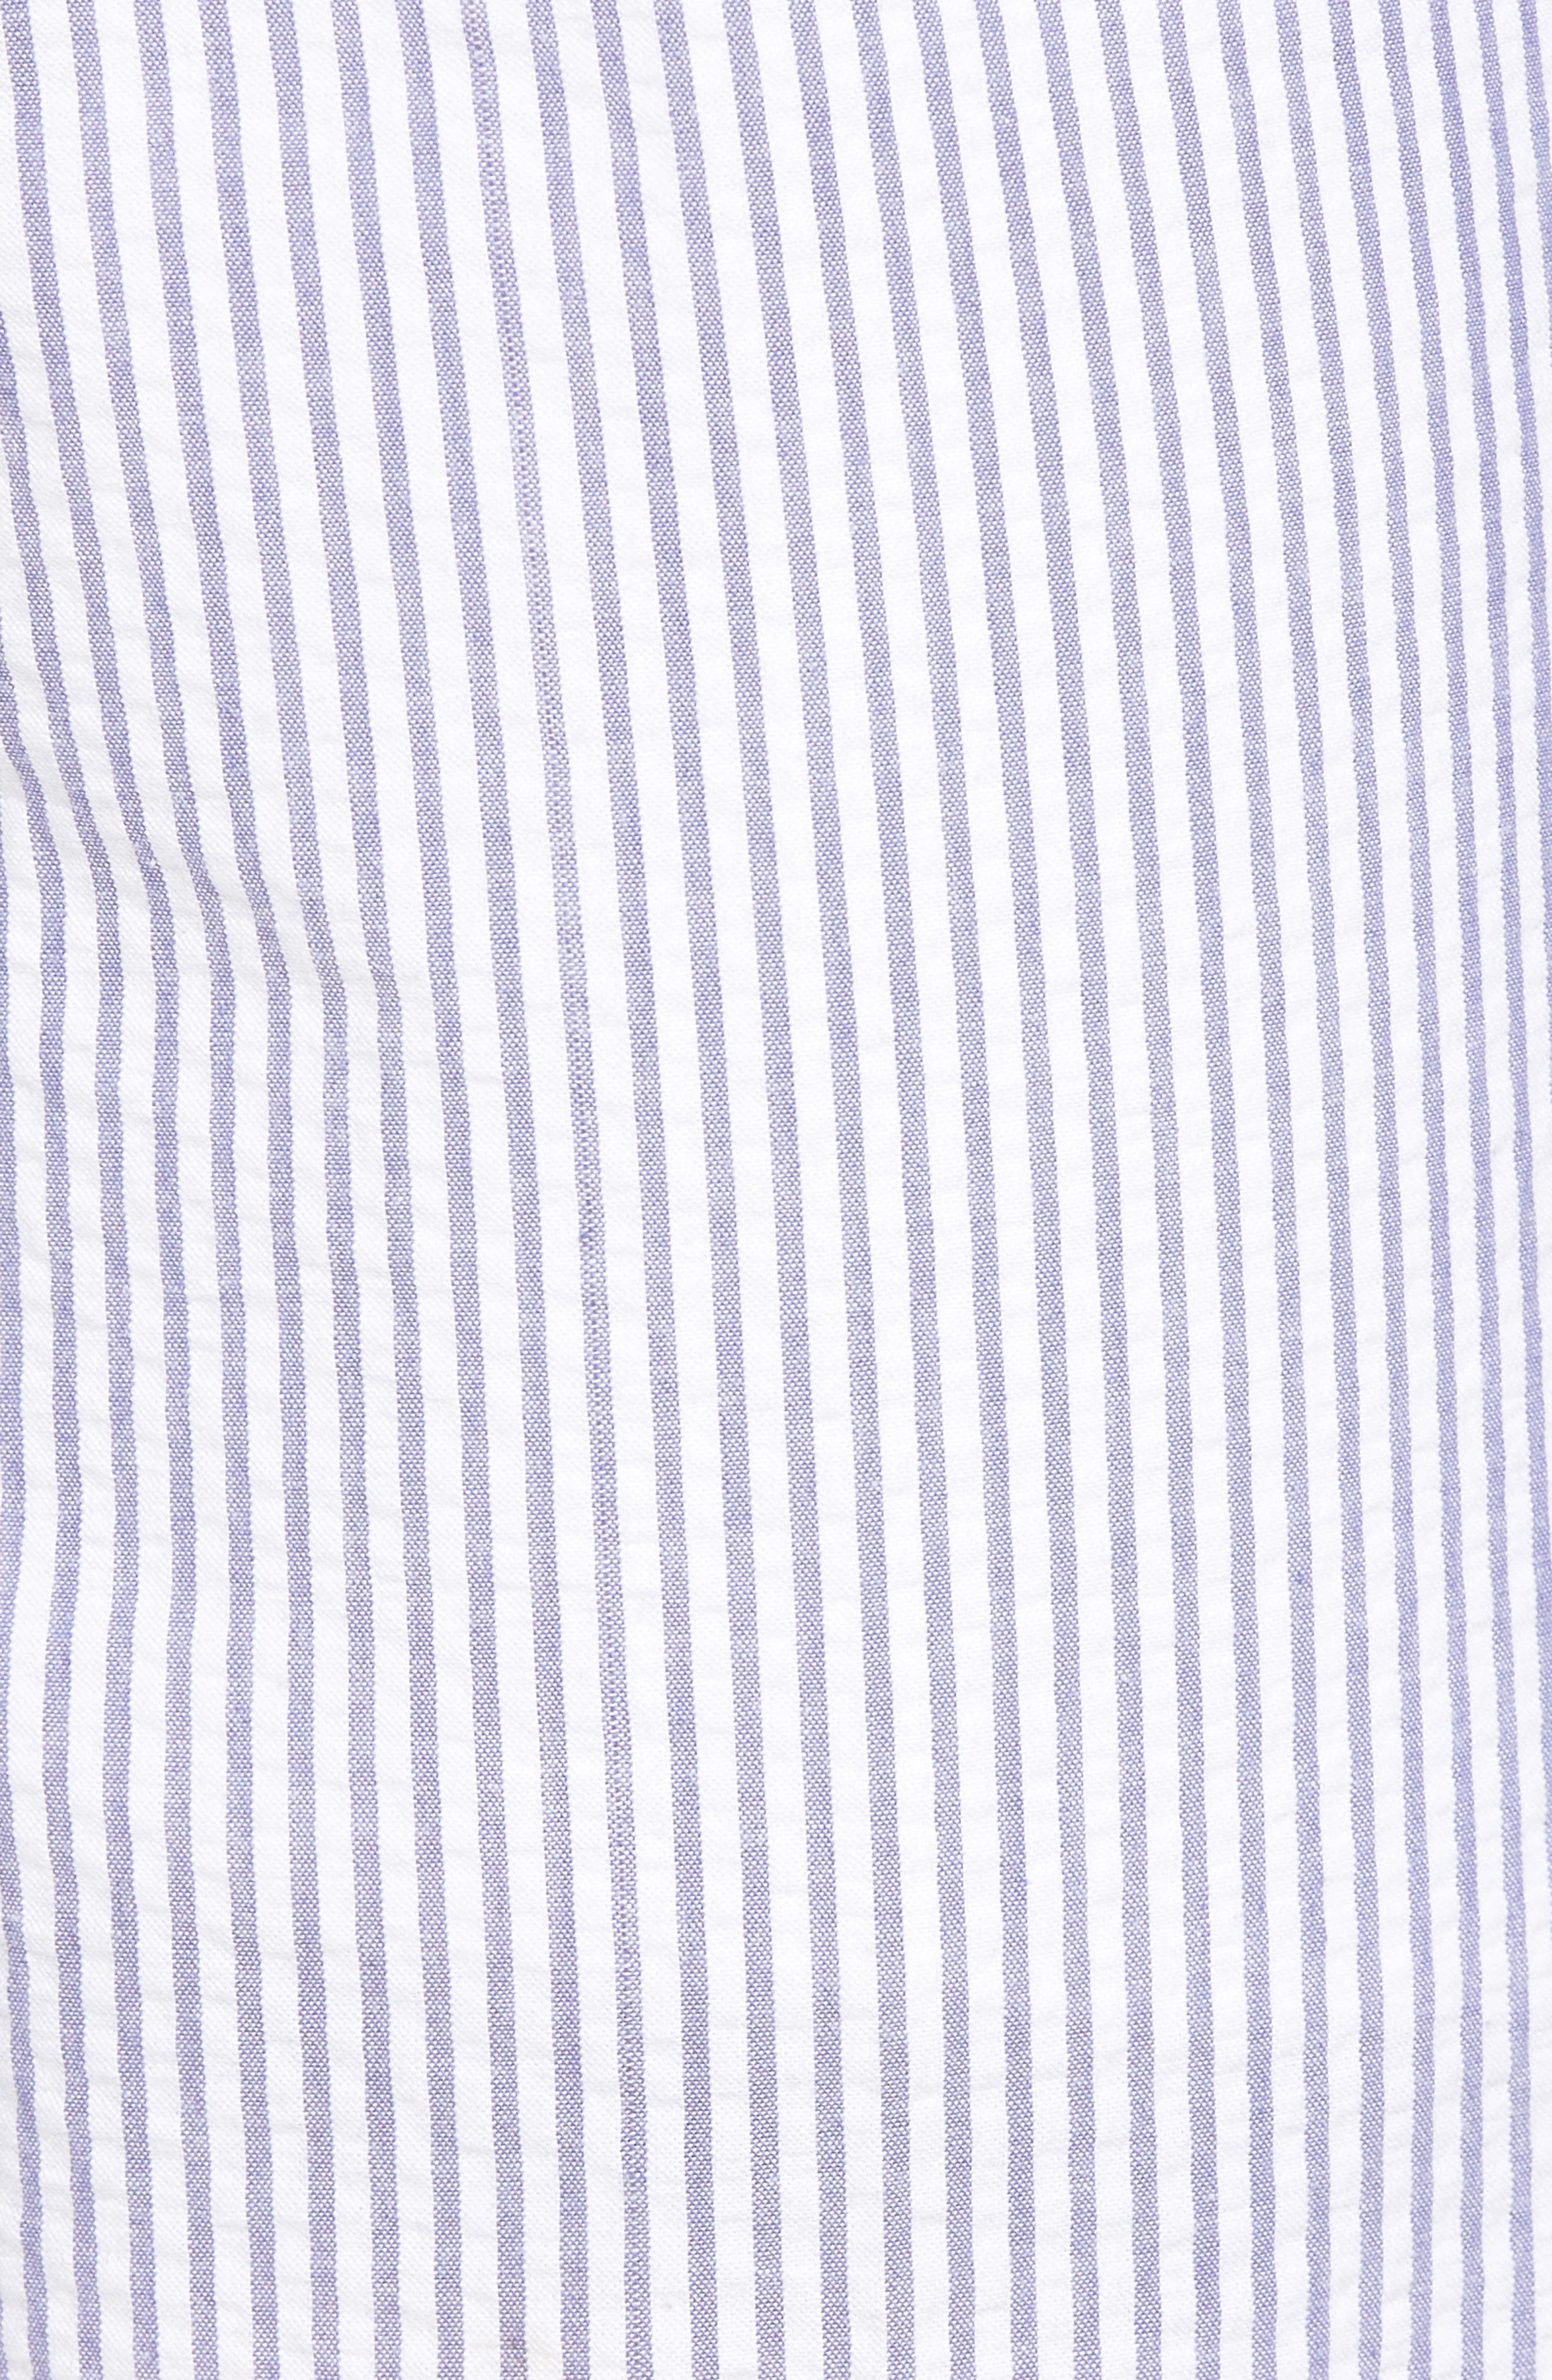 Andrew AIM Flat Front Seersucker Trousers,                             Alternate thumbnail 5, color,                             Blue And White